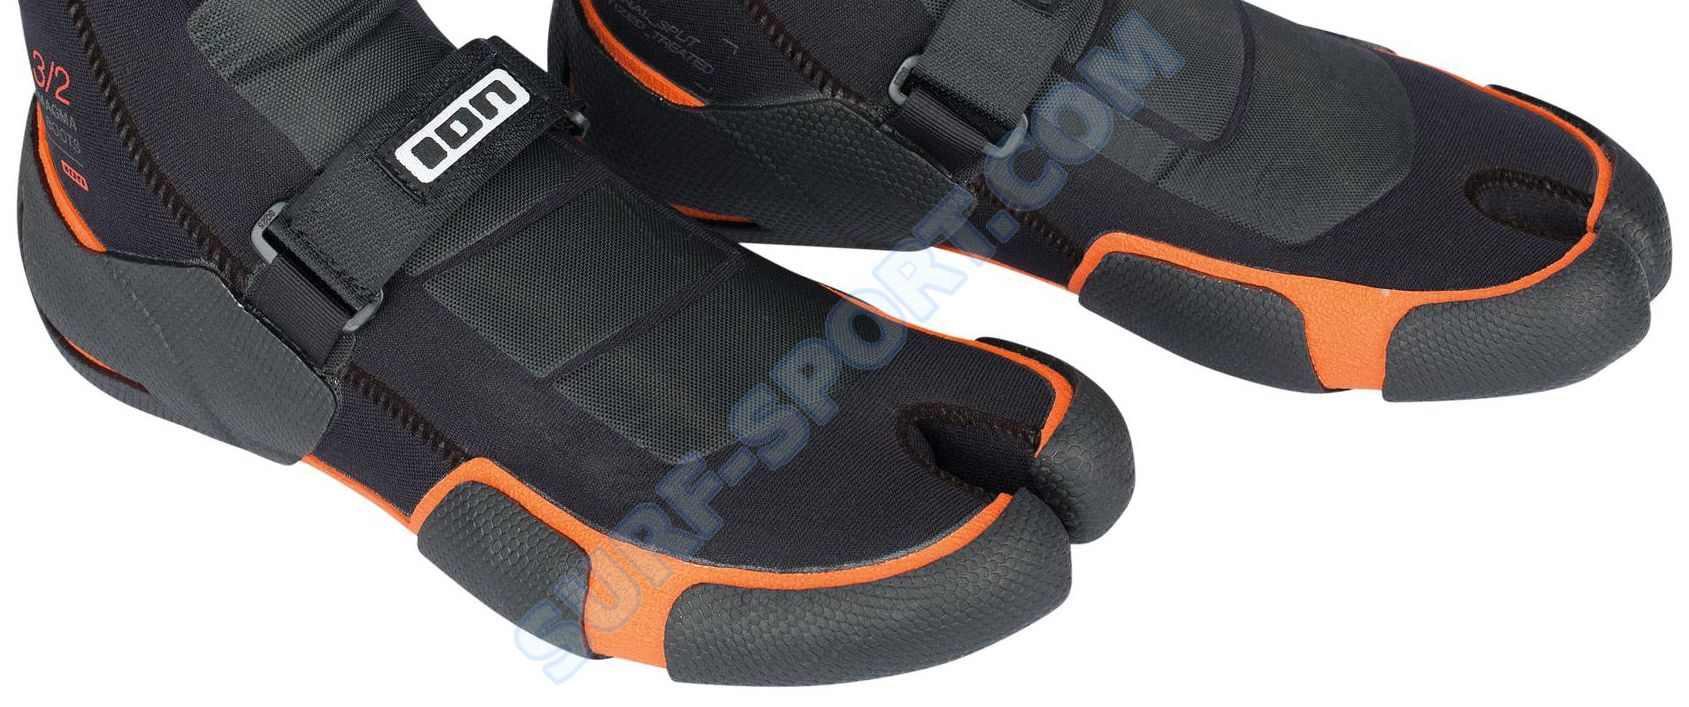 Ion_MagmaBoots-3:2_SurfSport_2016-01.jpg